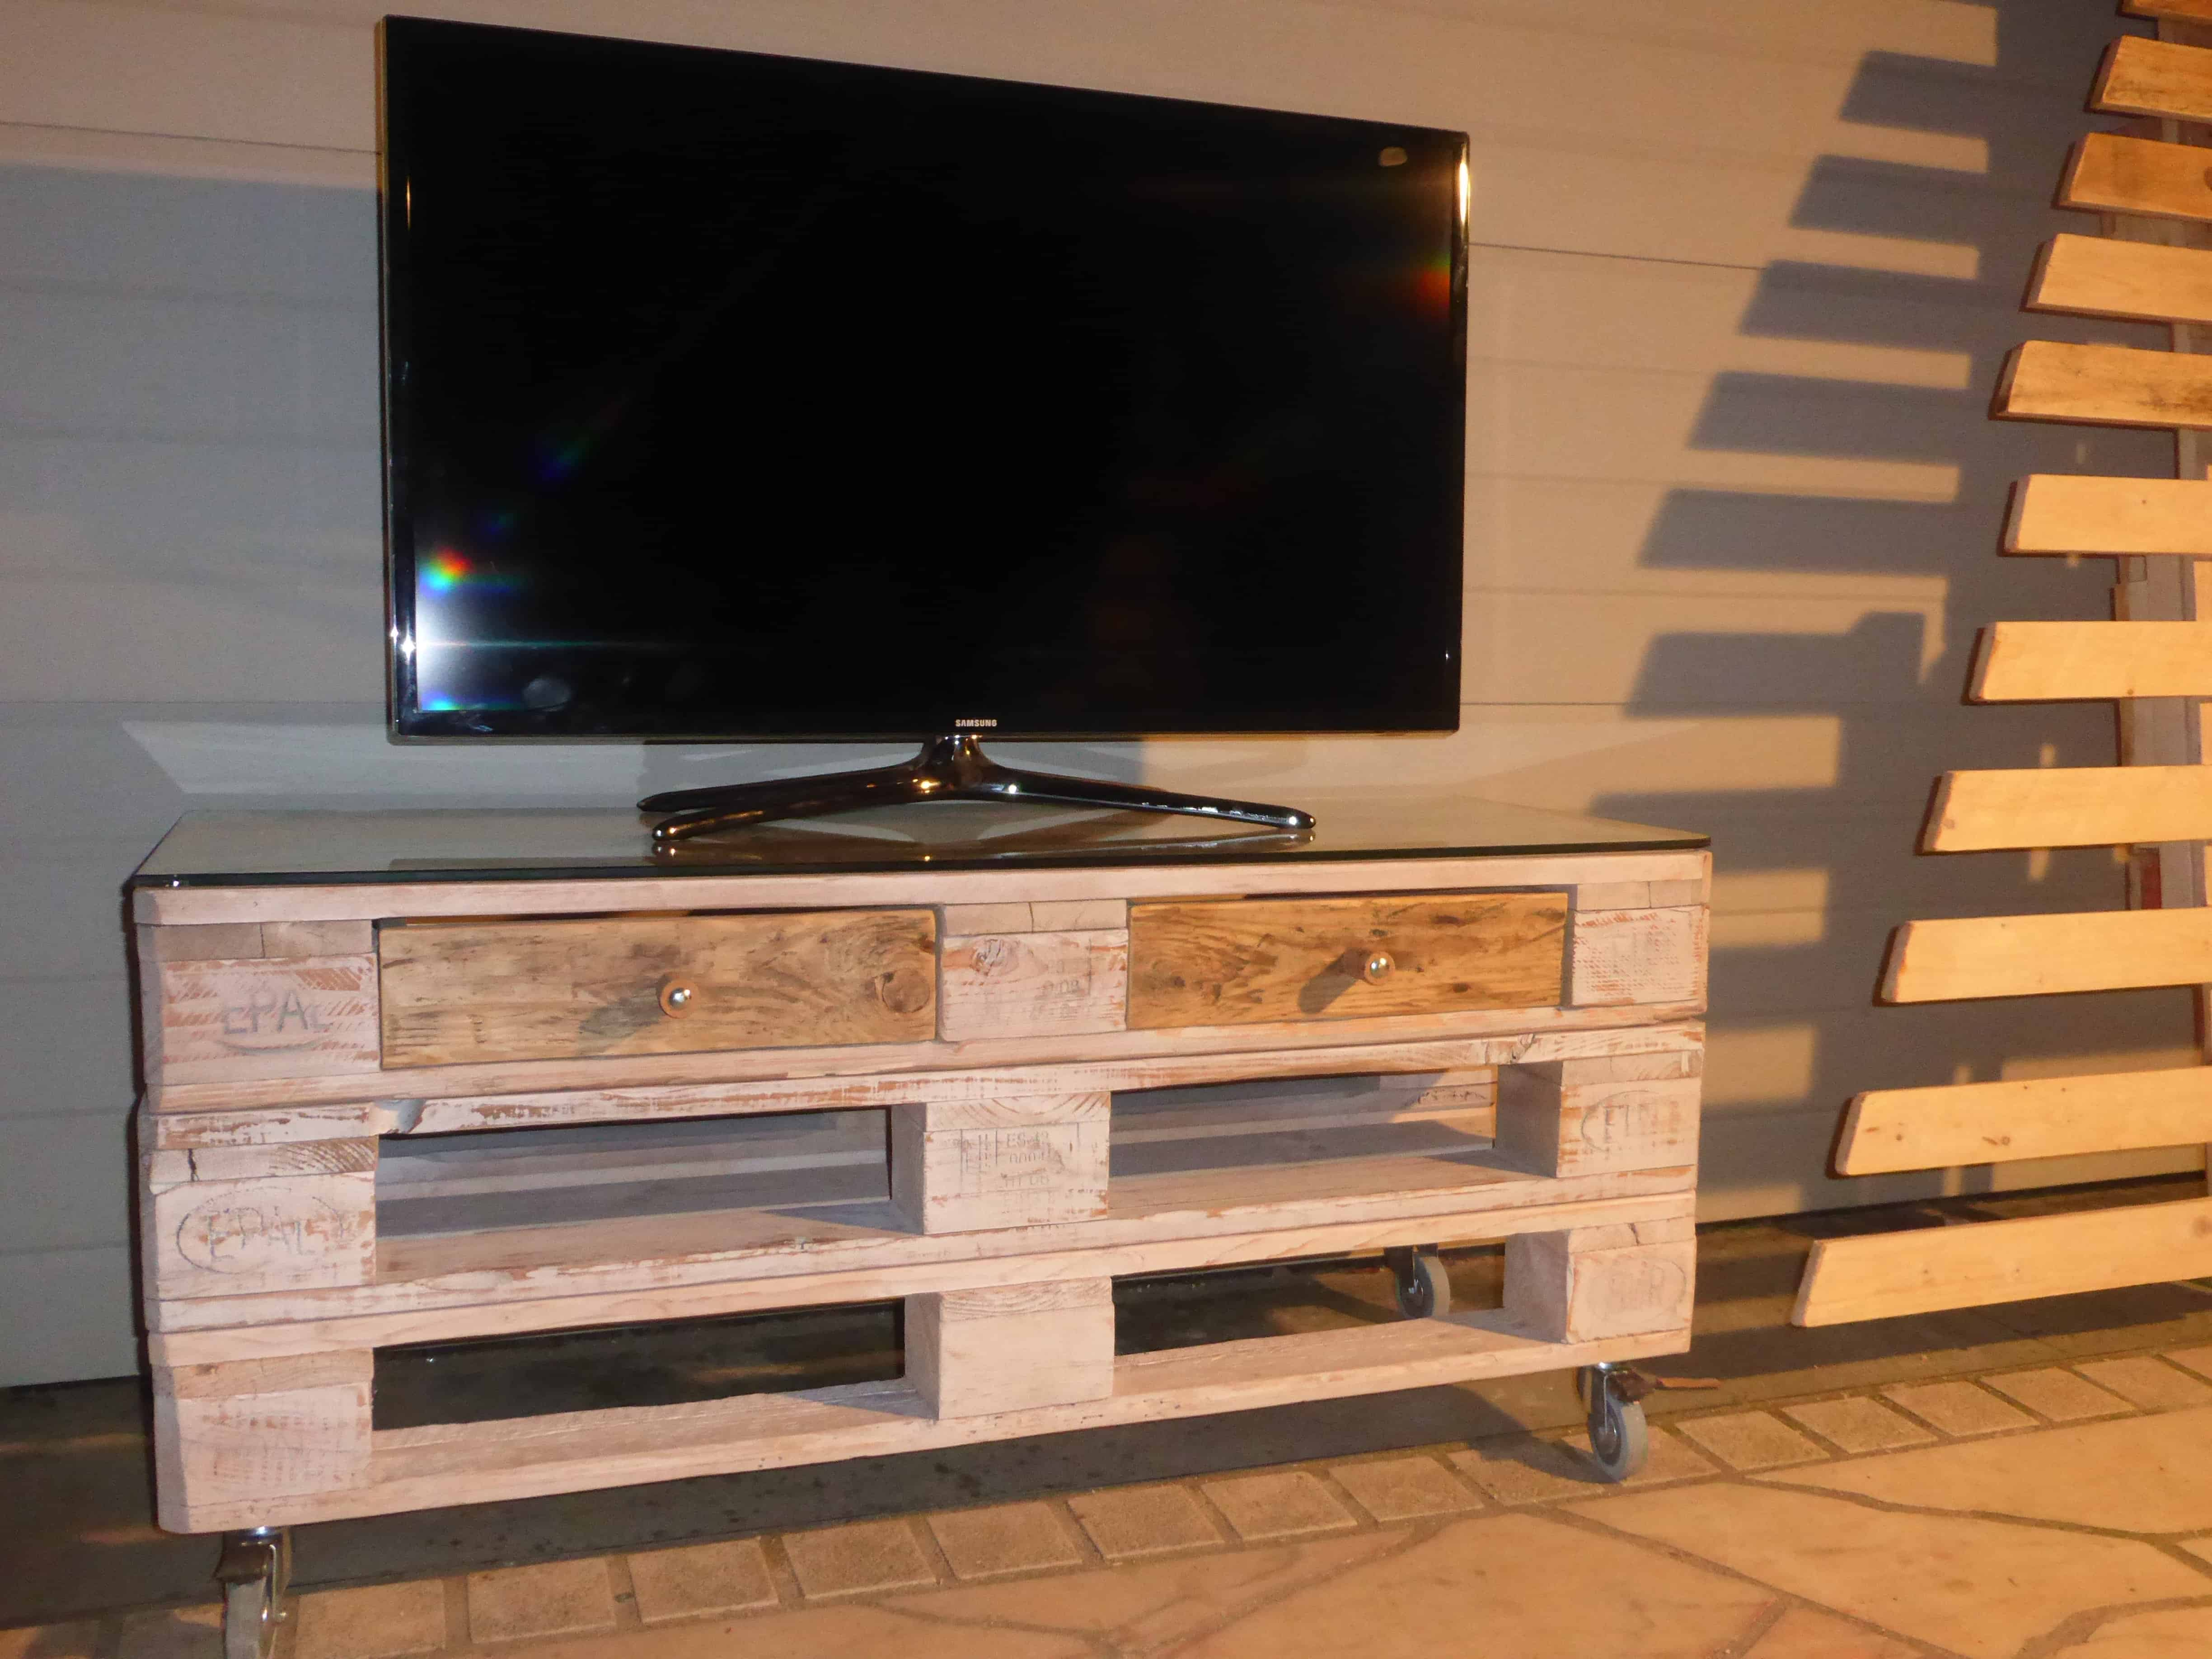 Whitewashed Mobile Pallet TV Stand Has Drawers Too! u2022 Pallet Ideas u2022 1001 Pallets